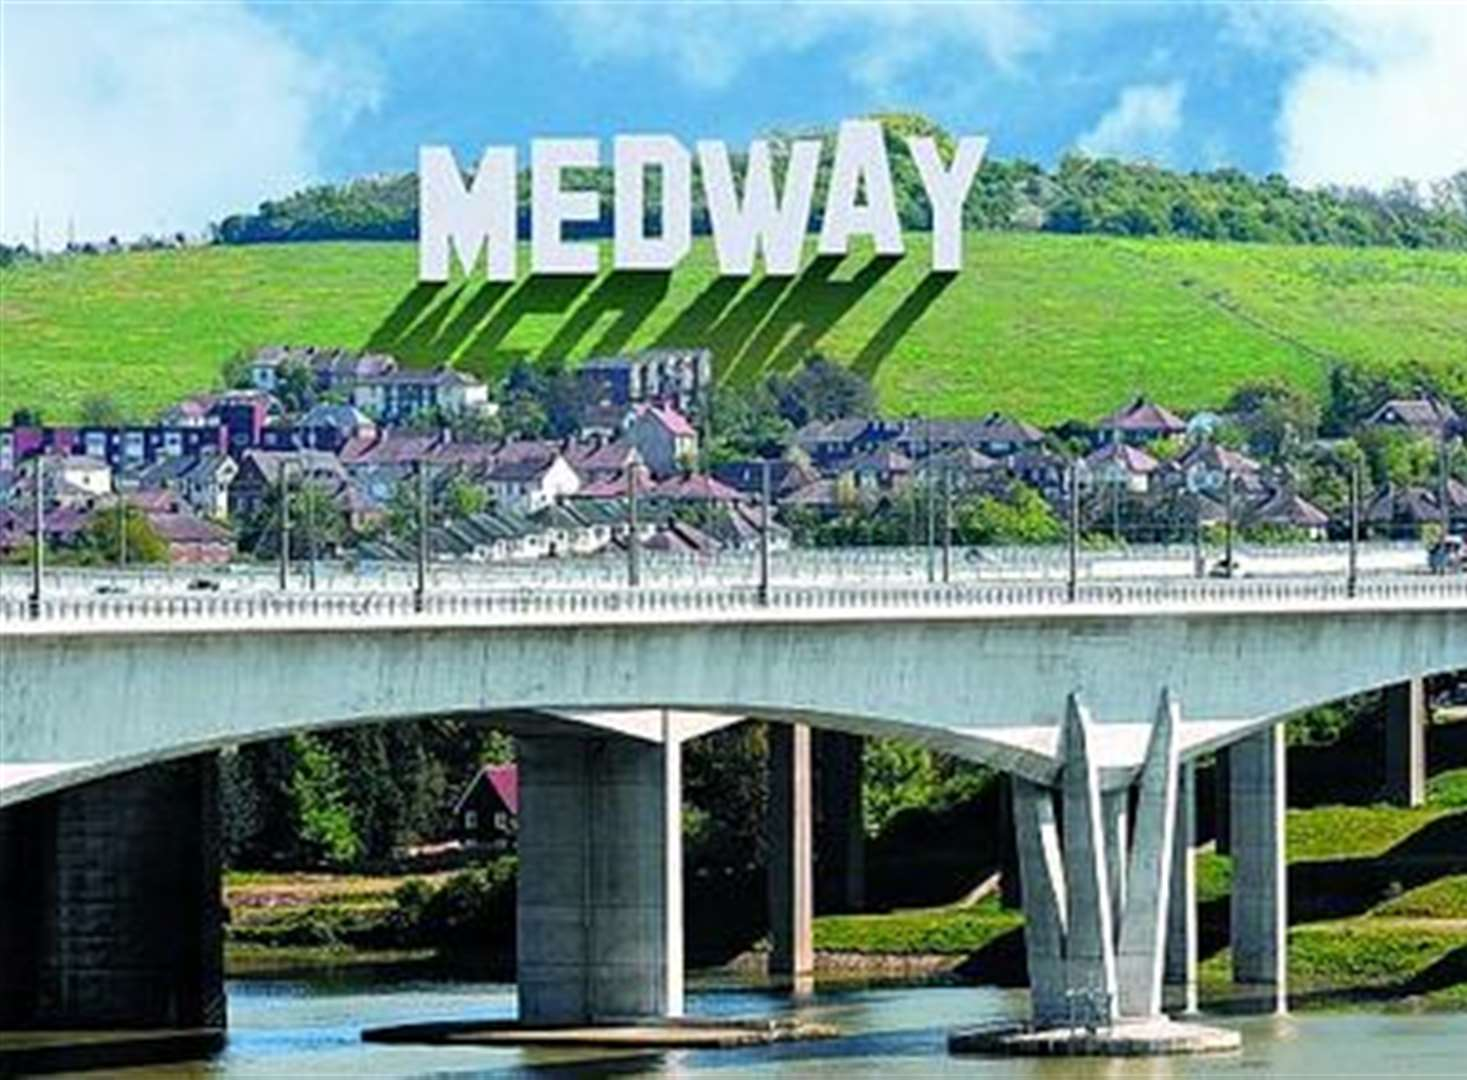 Medway's Hollywood sign plan